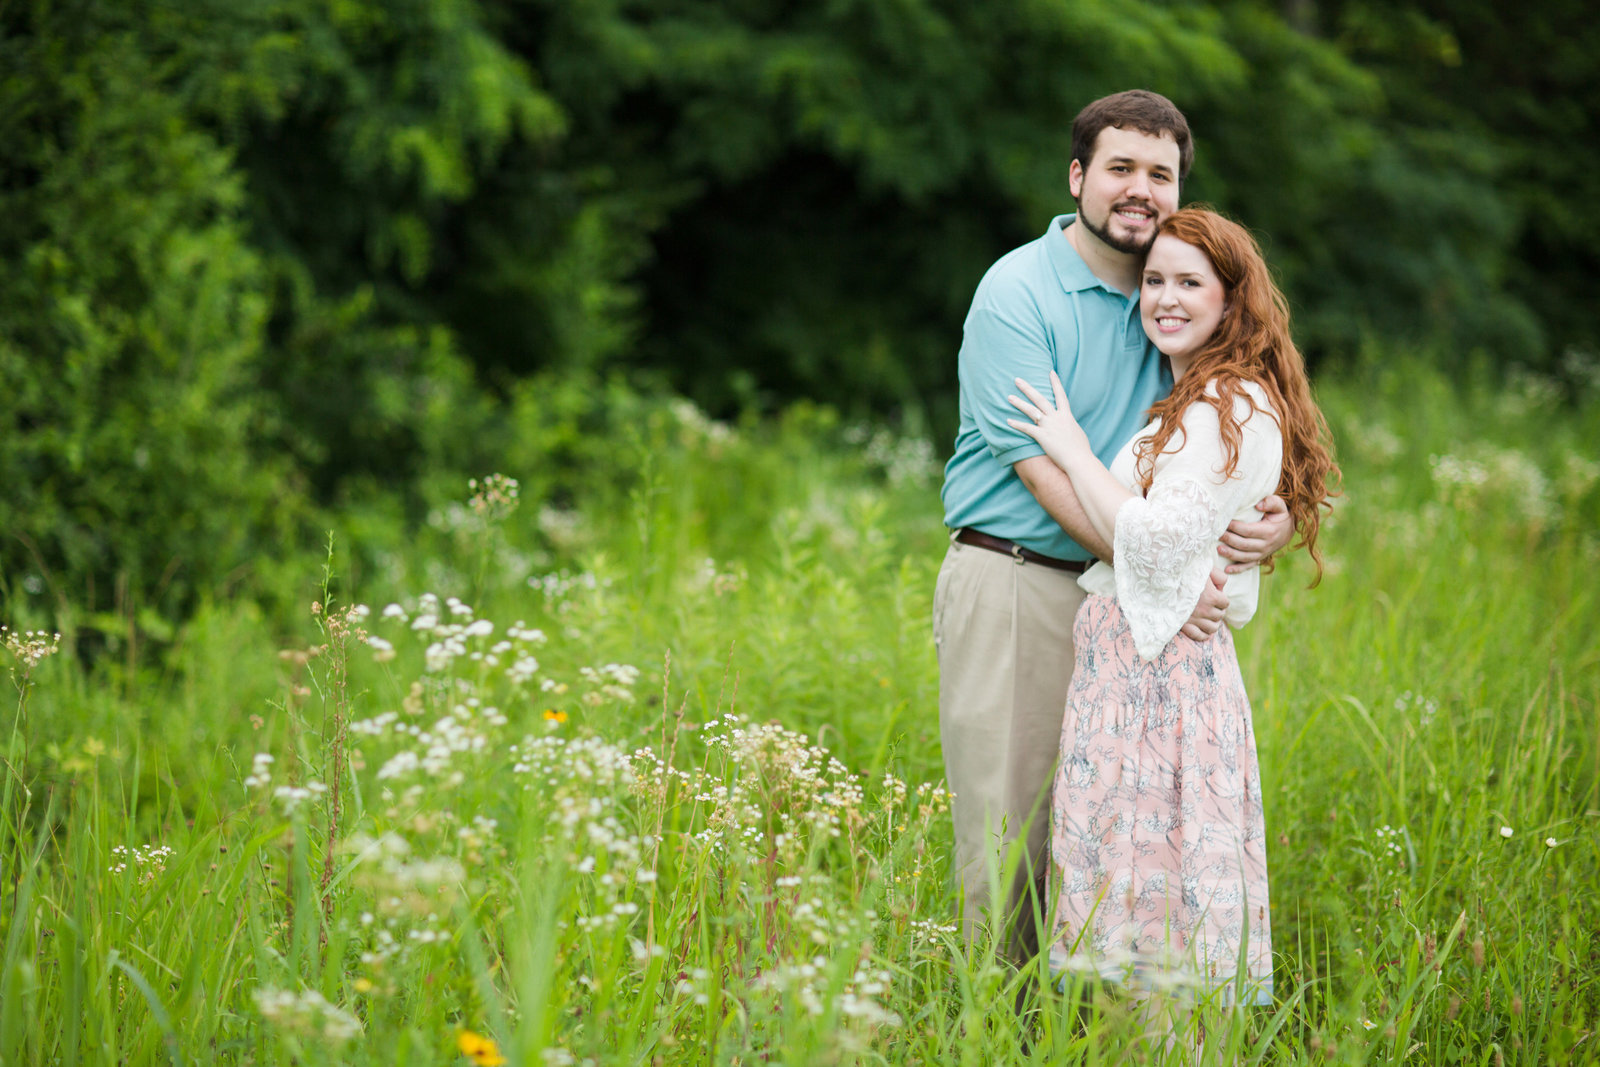 bridal portrait skyryder engagement wedding photography blacksburg roanoke charlottesville lexington radford-041